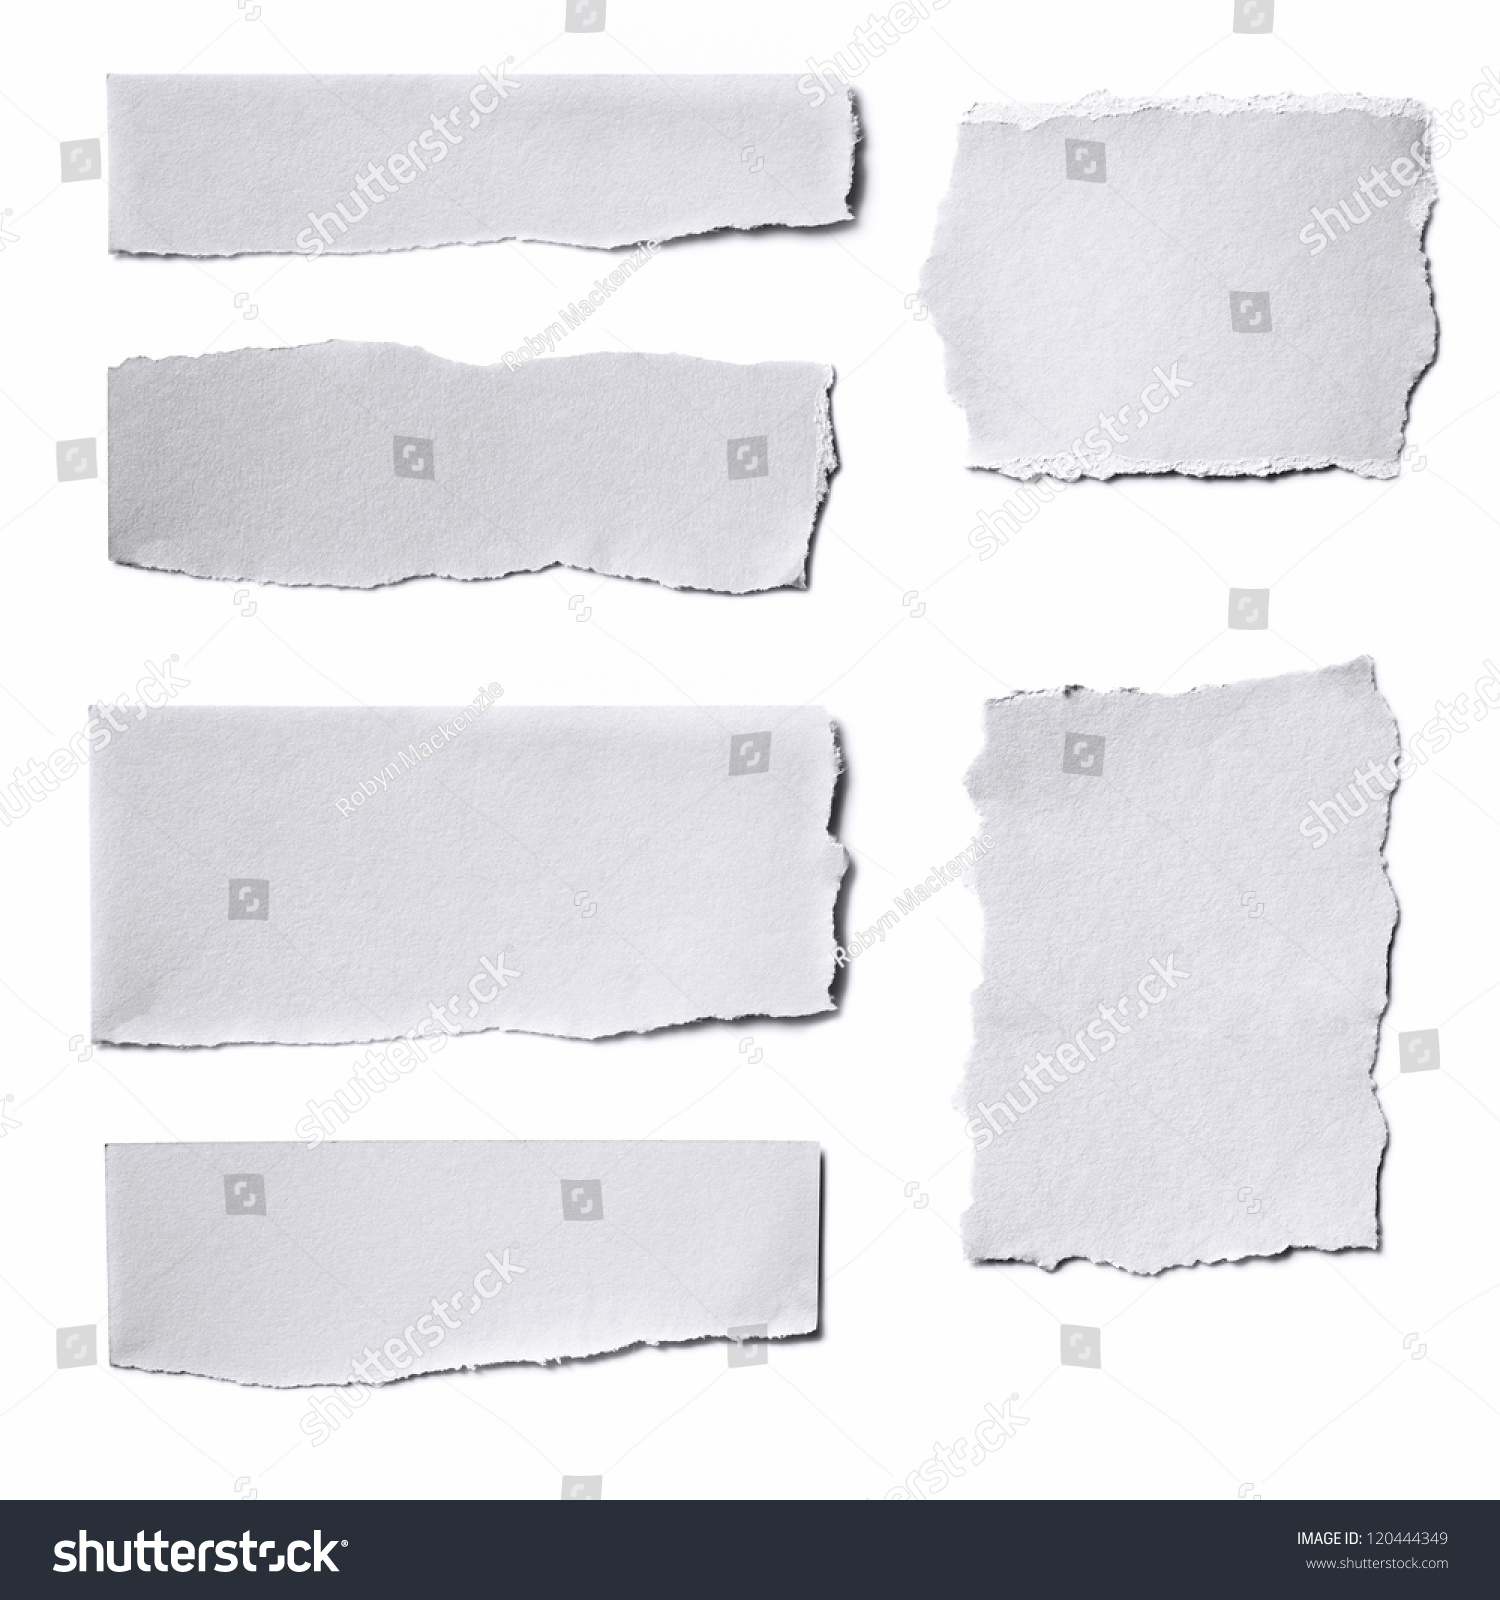 Collection of white paper tears, isolated on white with soft shadows. #120444349